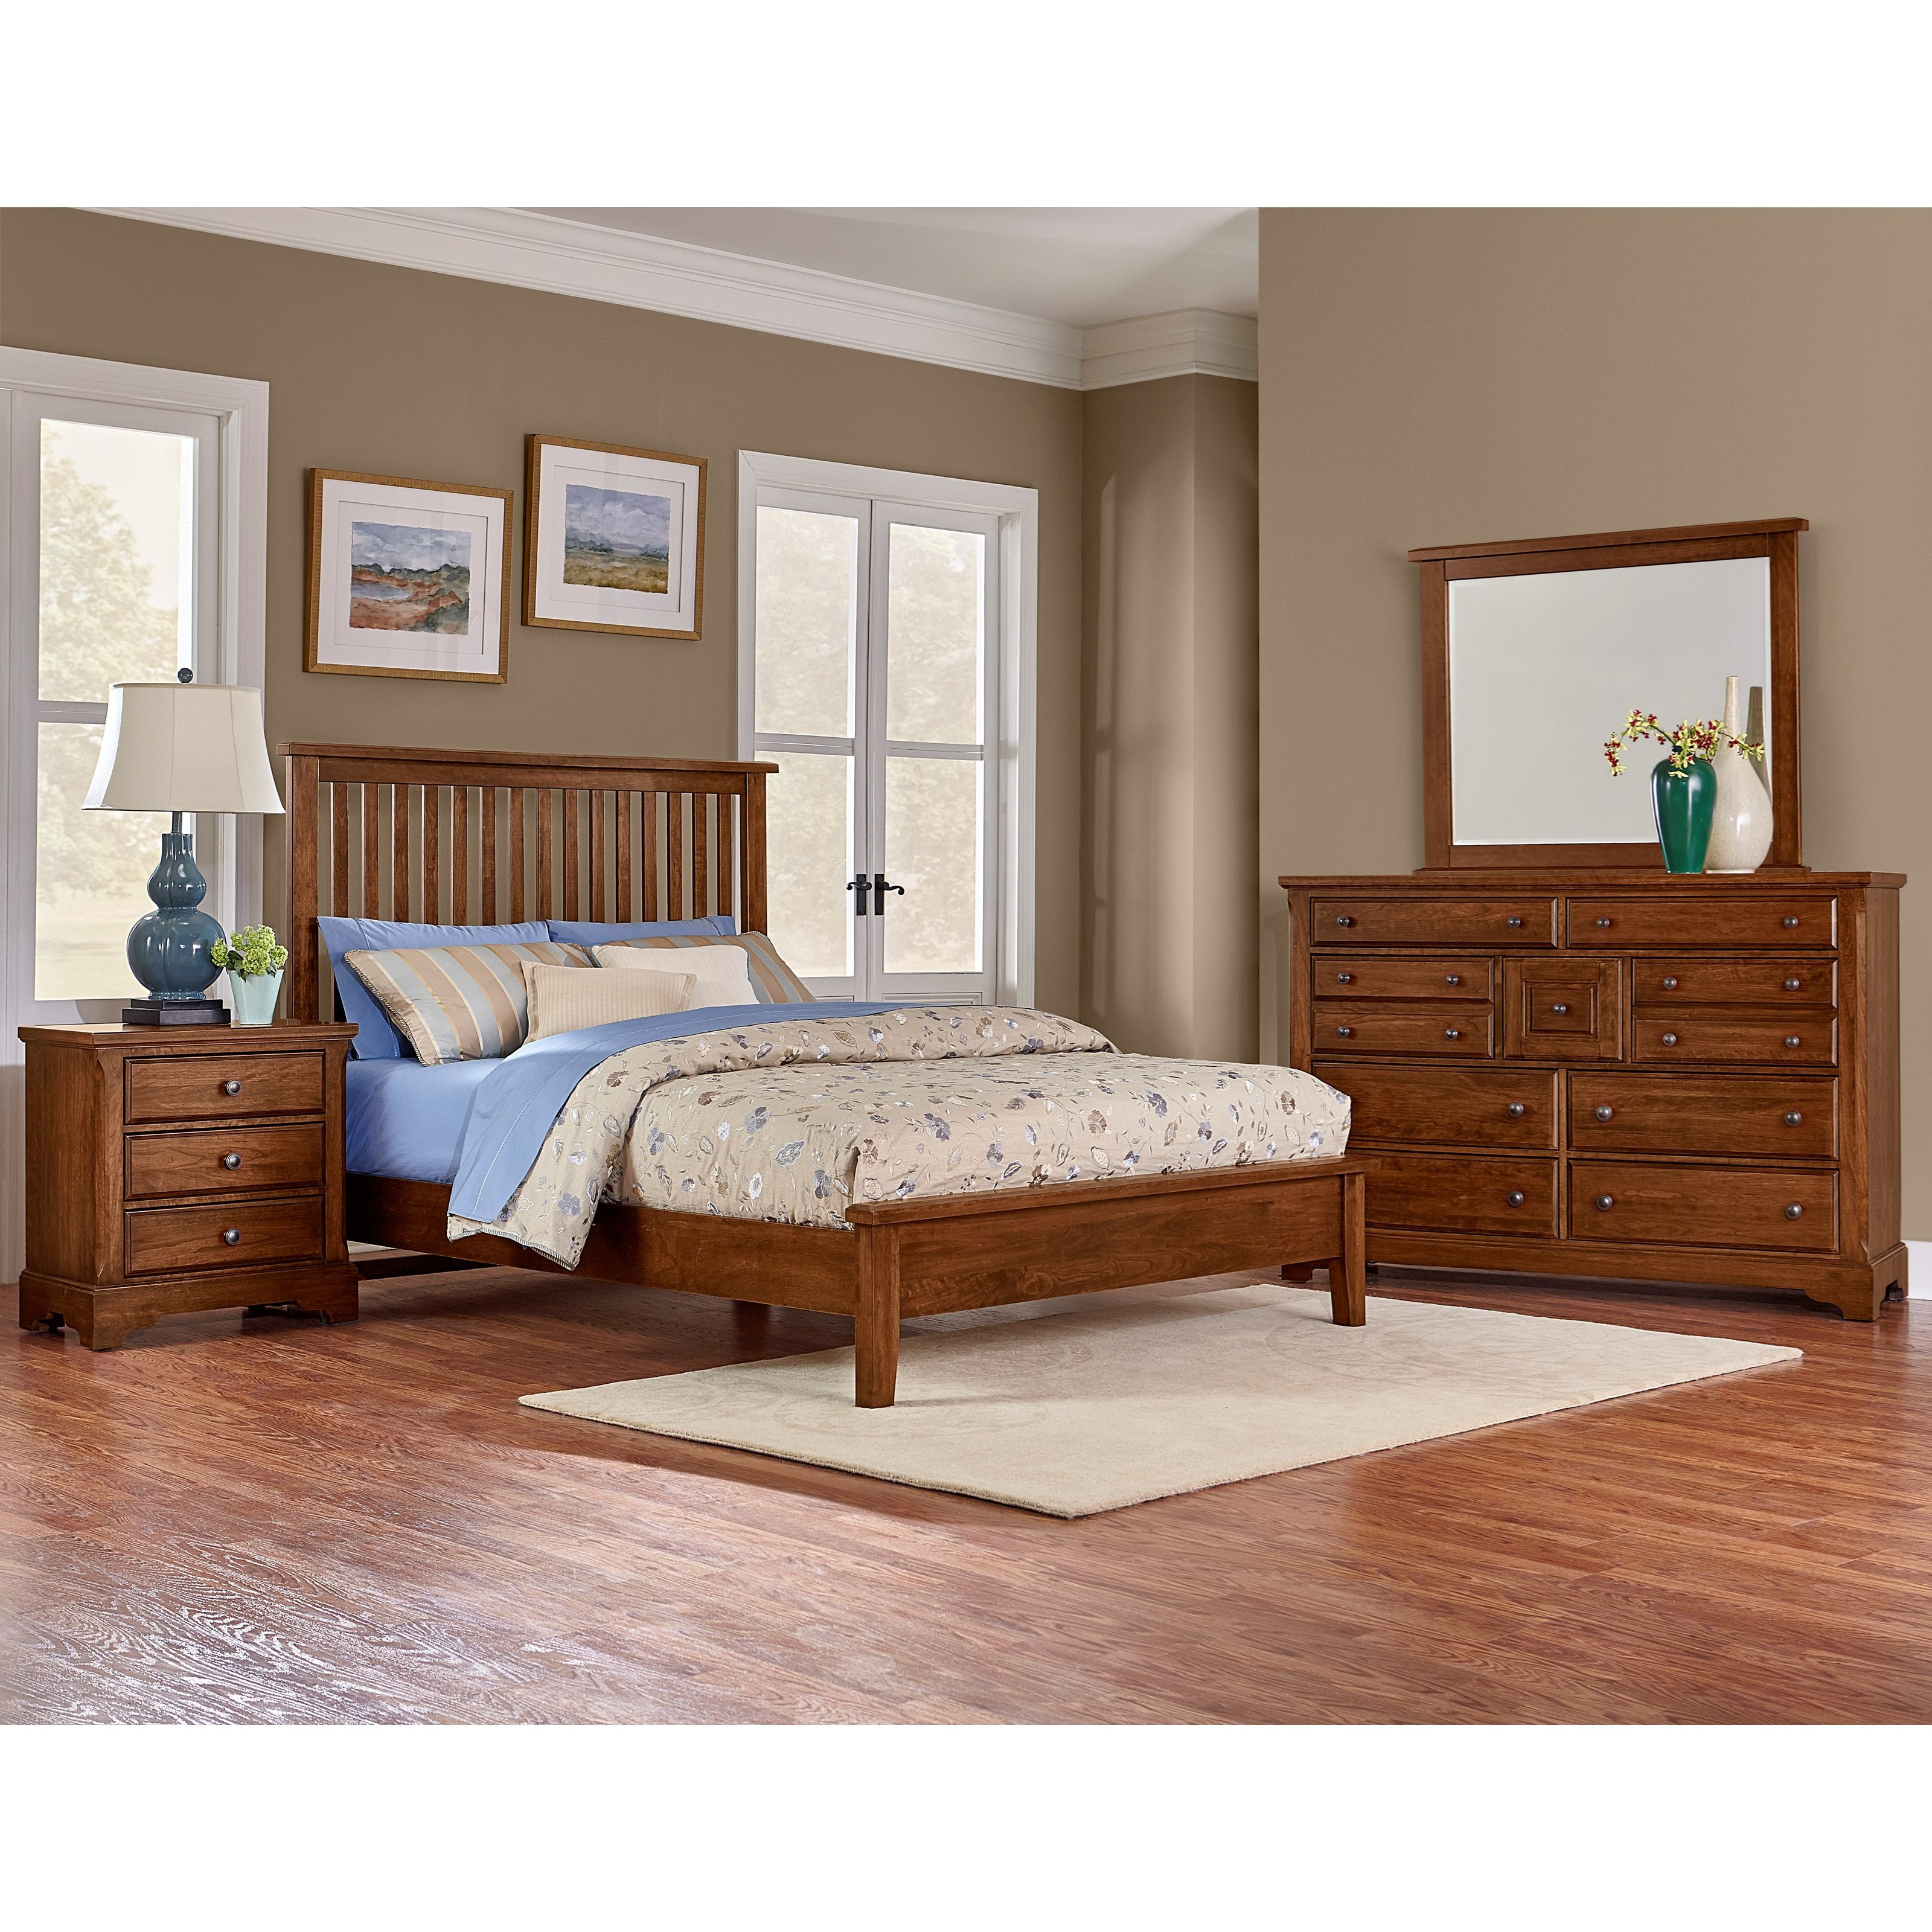 Artisan Choices Queen Bedroom Group by Artisan & Post at Johnny Janosik